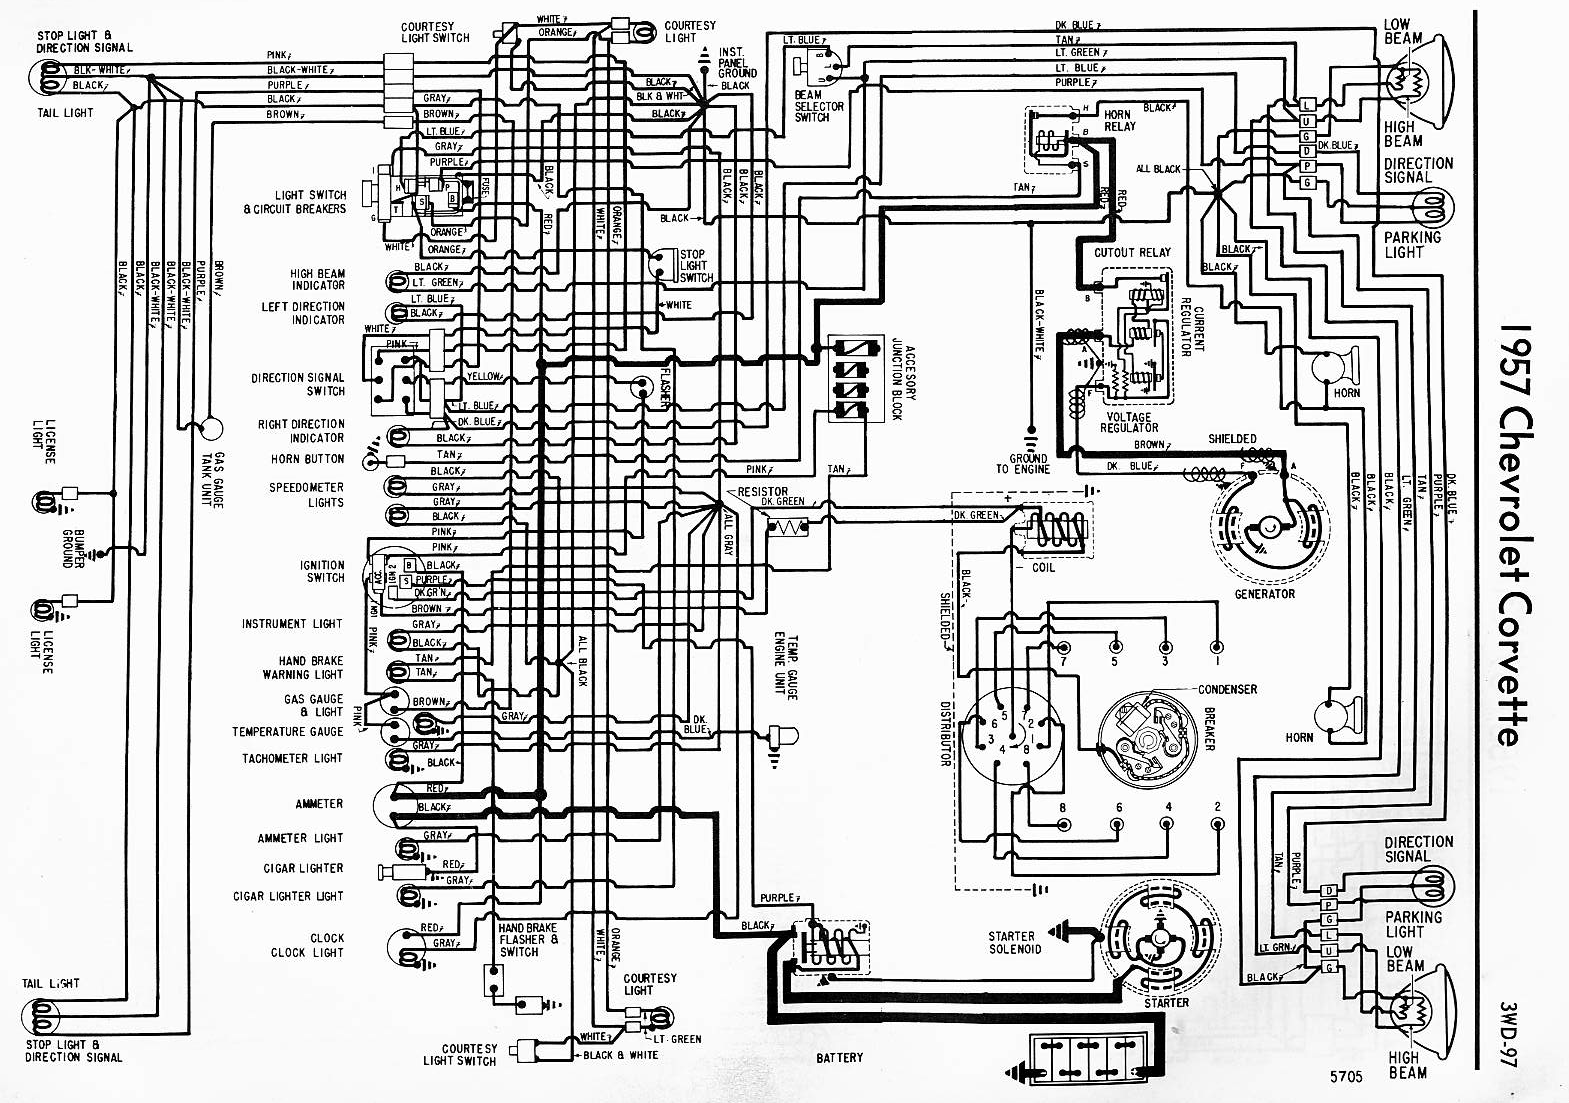 57 corvettte tracer schematic best one 1957 corvette wiring diagram willcox corvette, inc 1979 corvette wiring diagram at webbmarketing.co